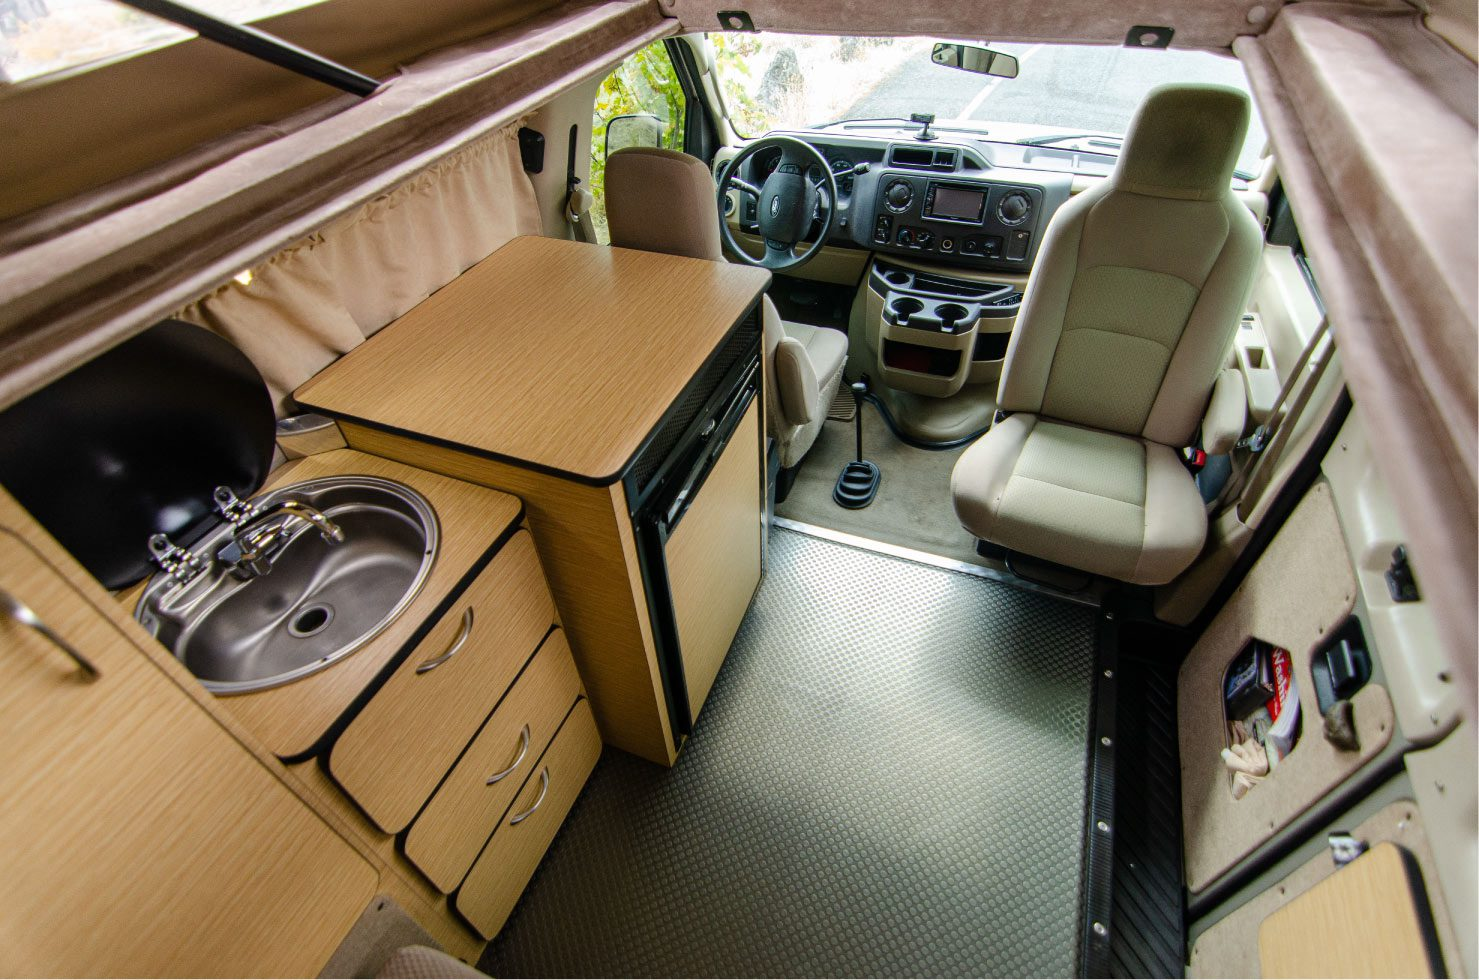 Interior layout of a Ford E-Series 4x4 Econoline Sportsmobile RB50 Layout Campervan conversion for sale built by Van Specialties